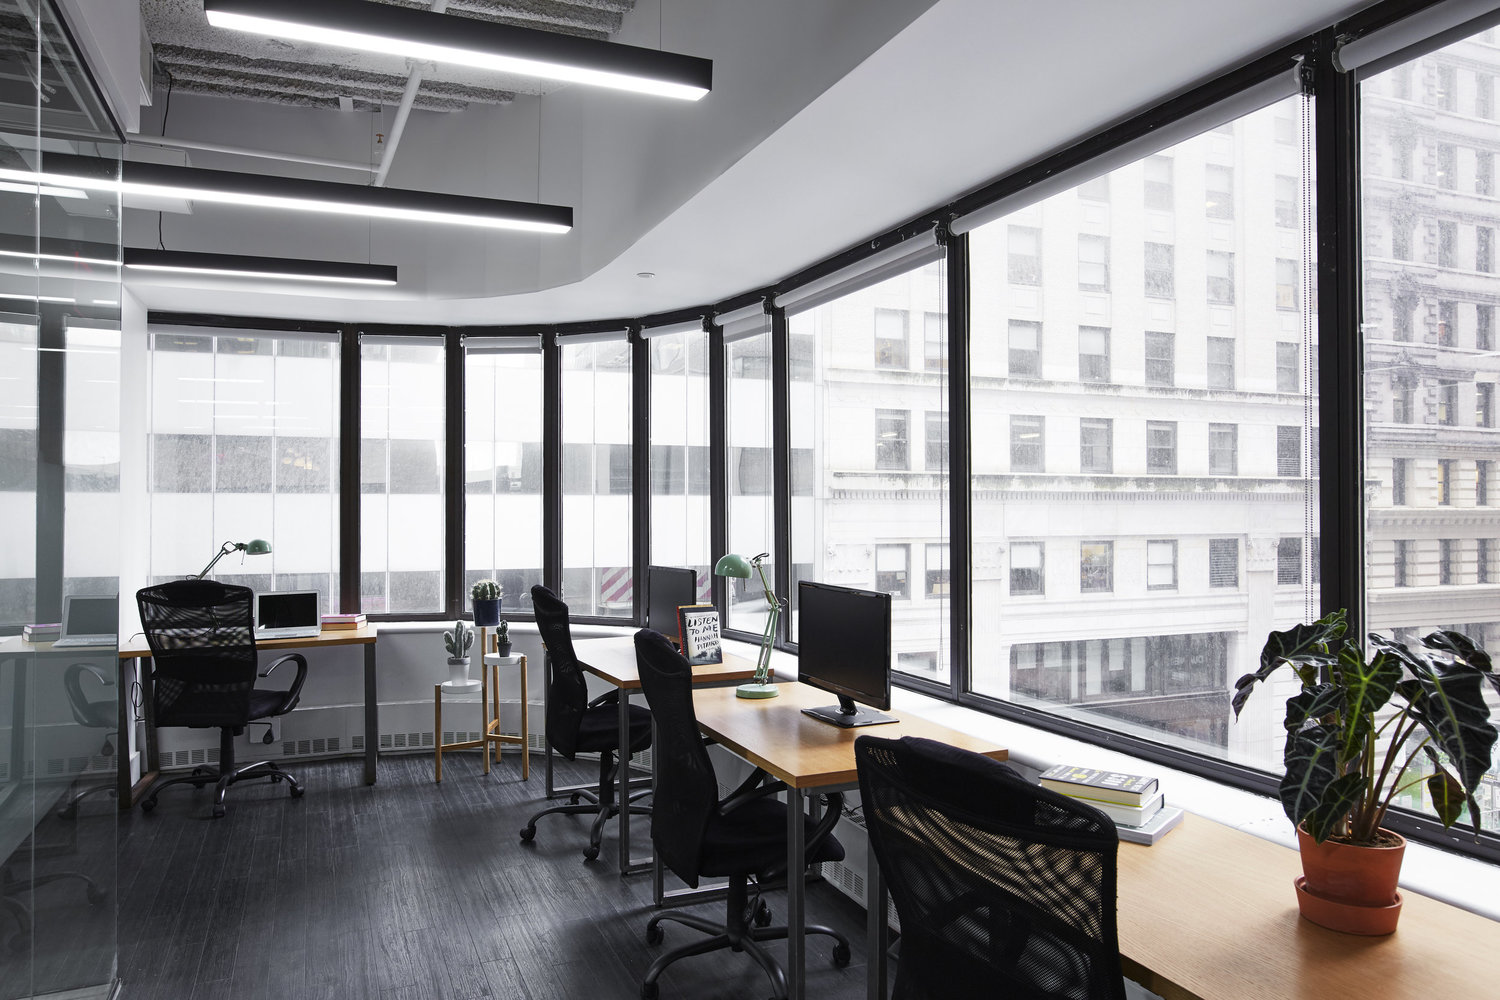 Interior of a startup office space with wooden desks and black chairs